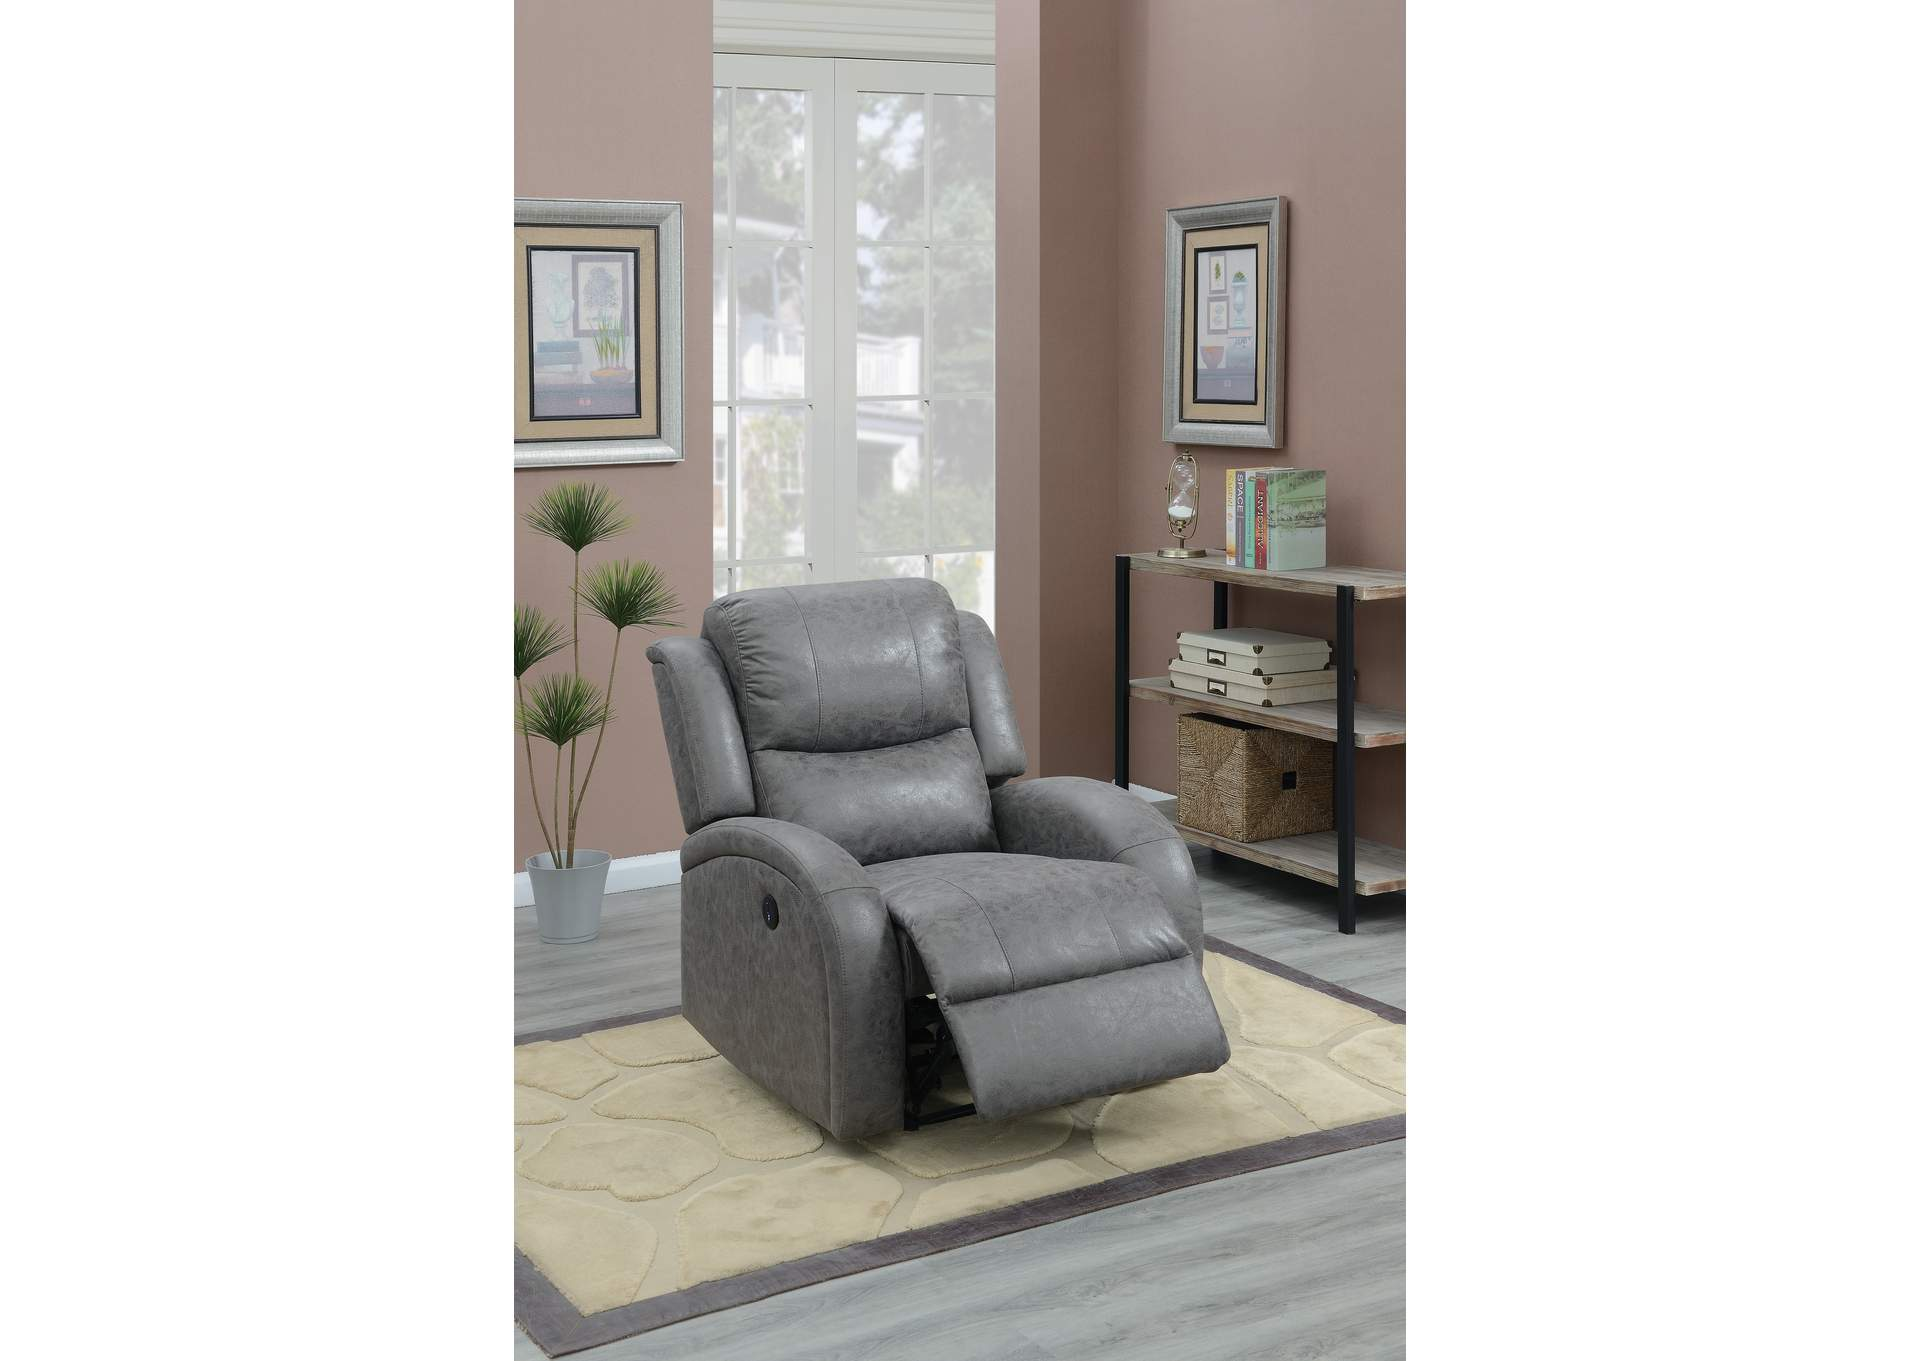 Taiyus Grey Power Recliner,Poundex